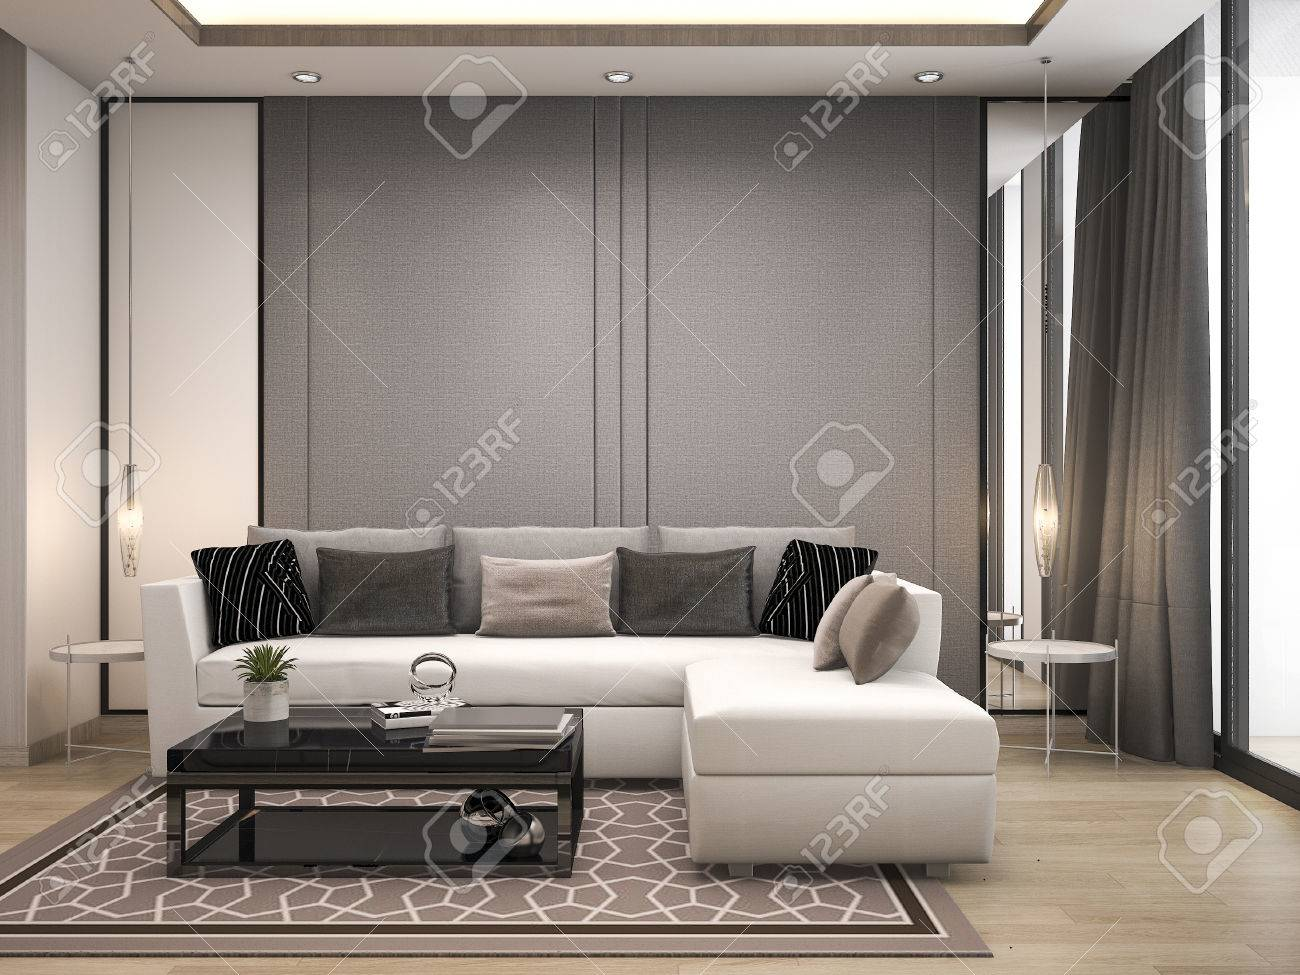 Rendering Soggiorni Moderni.3d Rendering Luxury And Modern Living Room With Good Design Leather